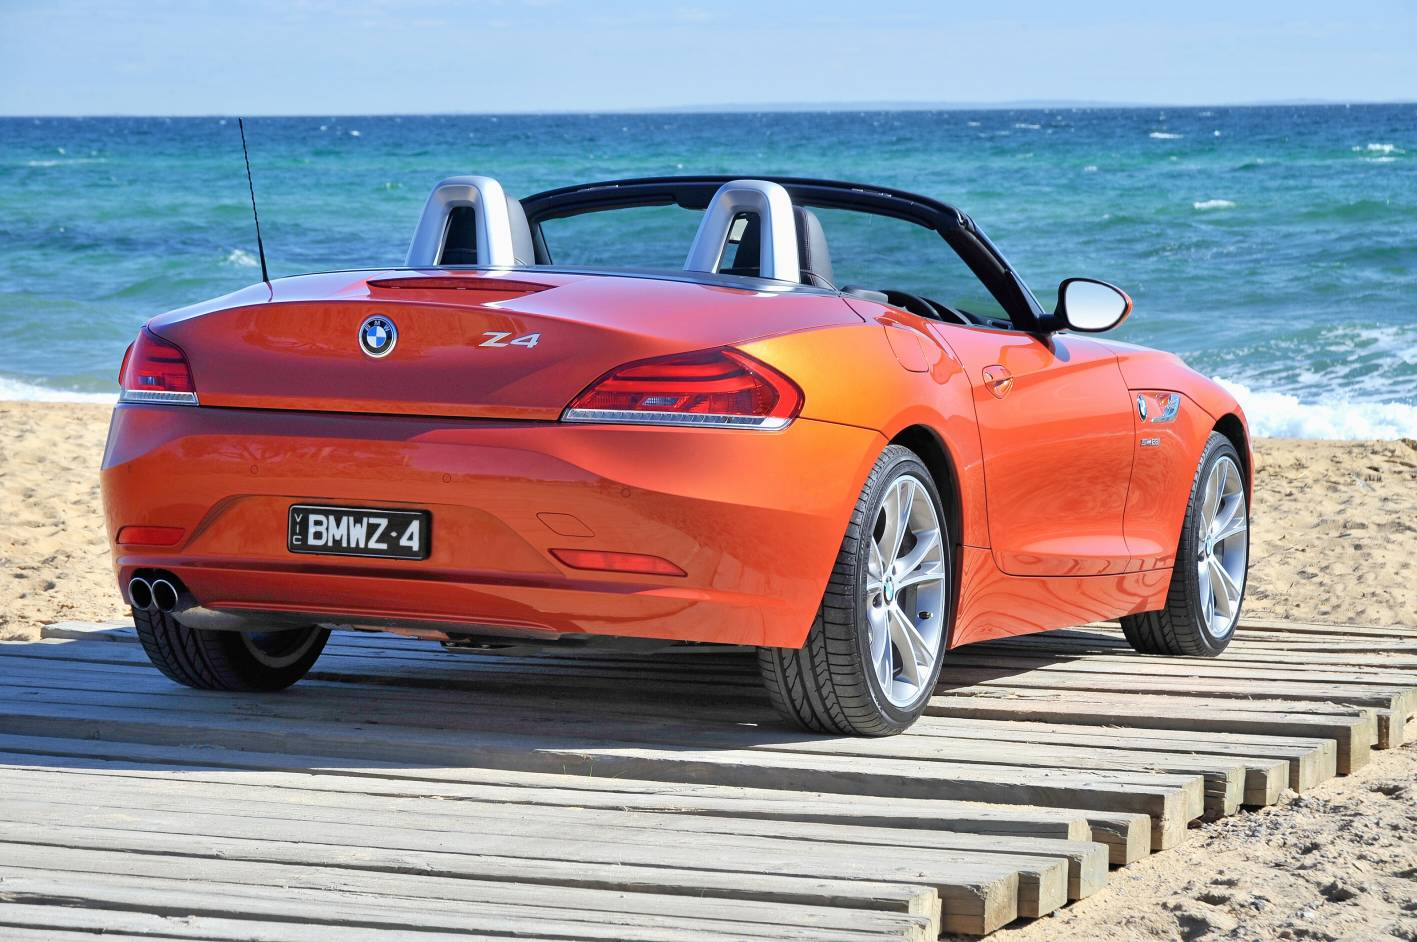 Bmw Cars News 2013 Z4 Receives Update Amp More Equipment